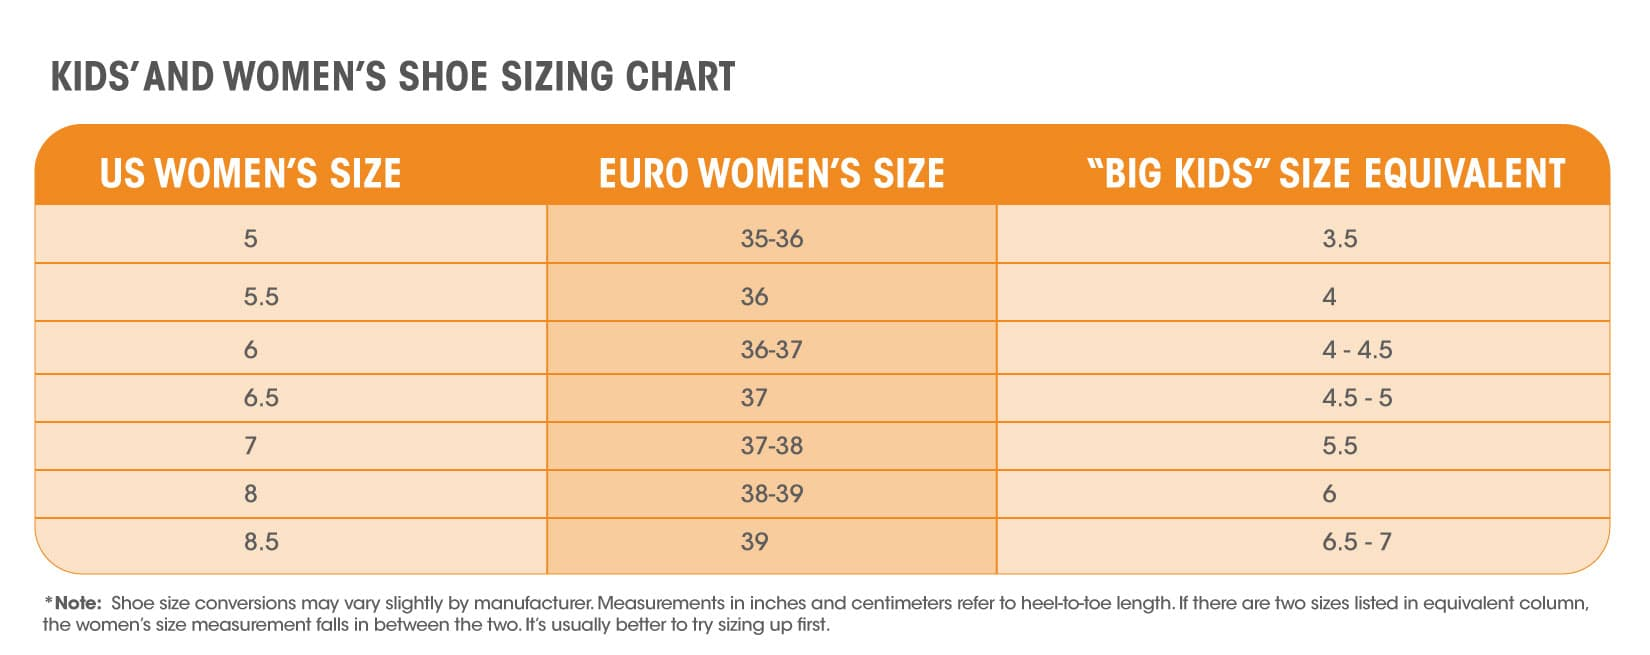 Big Kid Shoe Size Conversion To Women